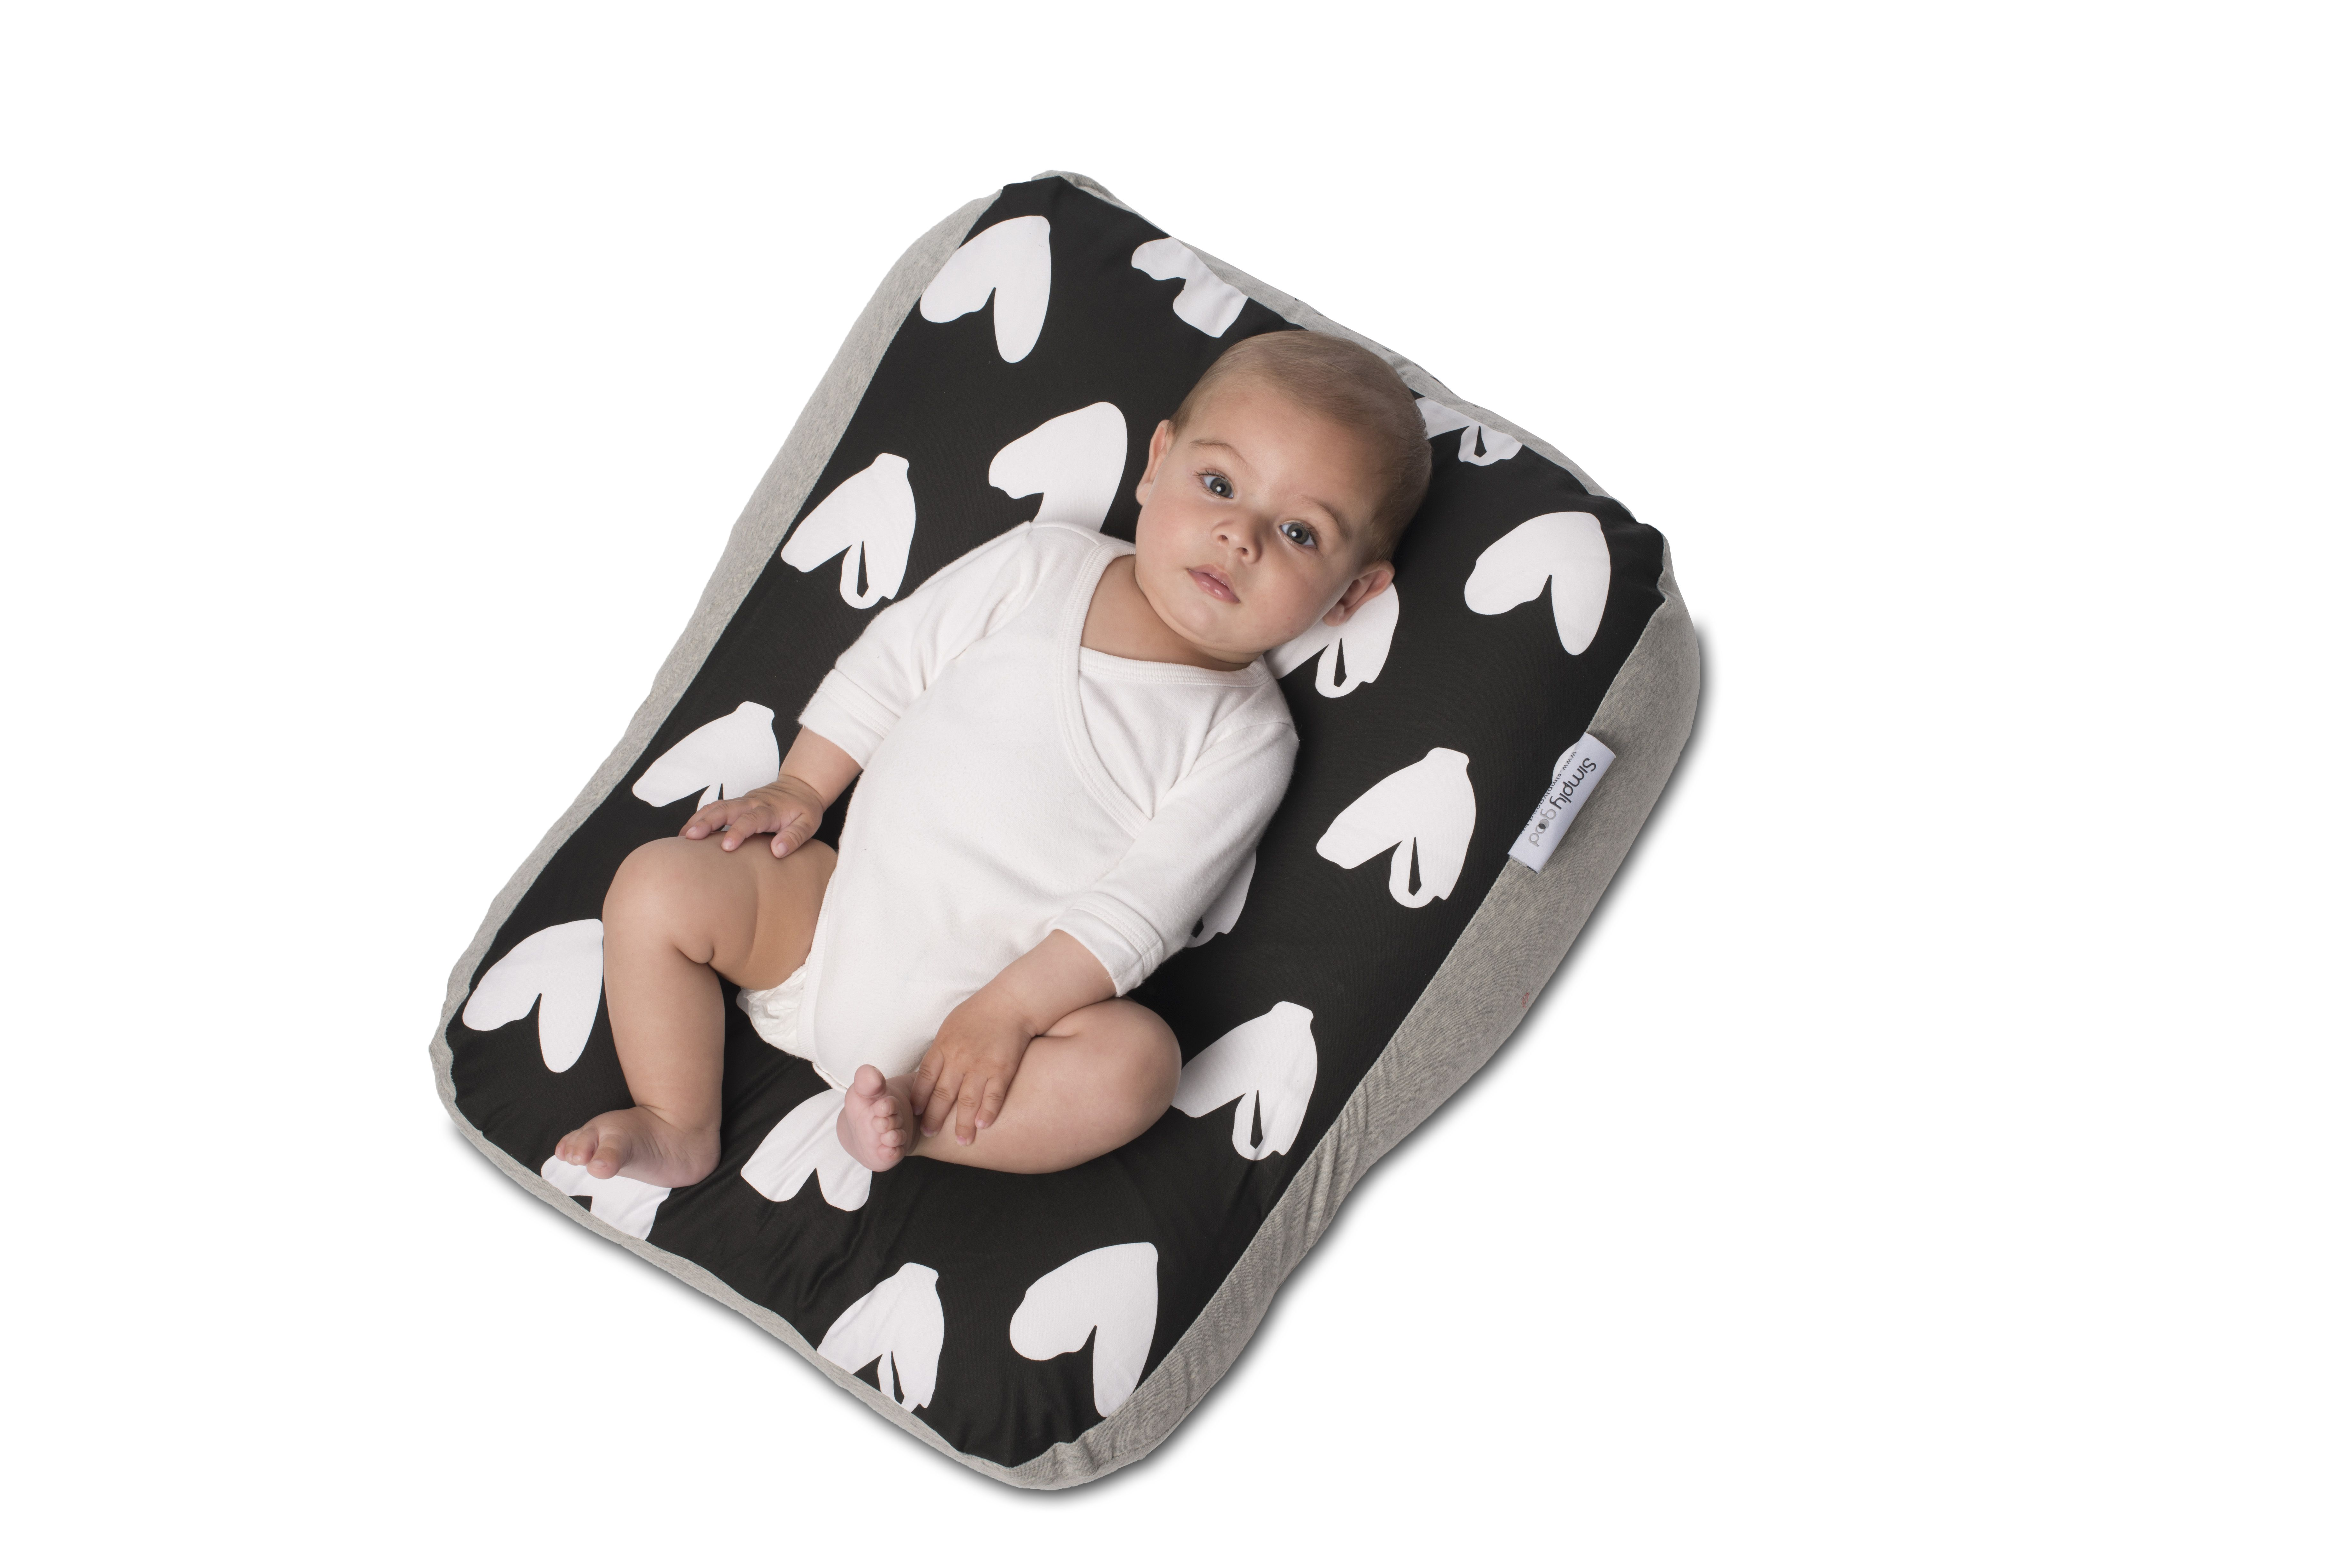 Baby Recliner By Simplygood An Ergonomically Designed Pillow That Naturally Cradles Your Infant Its Gentle Incl Baby Pillows Baby Crib Designs Crib Pillows